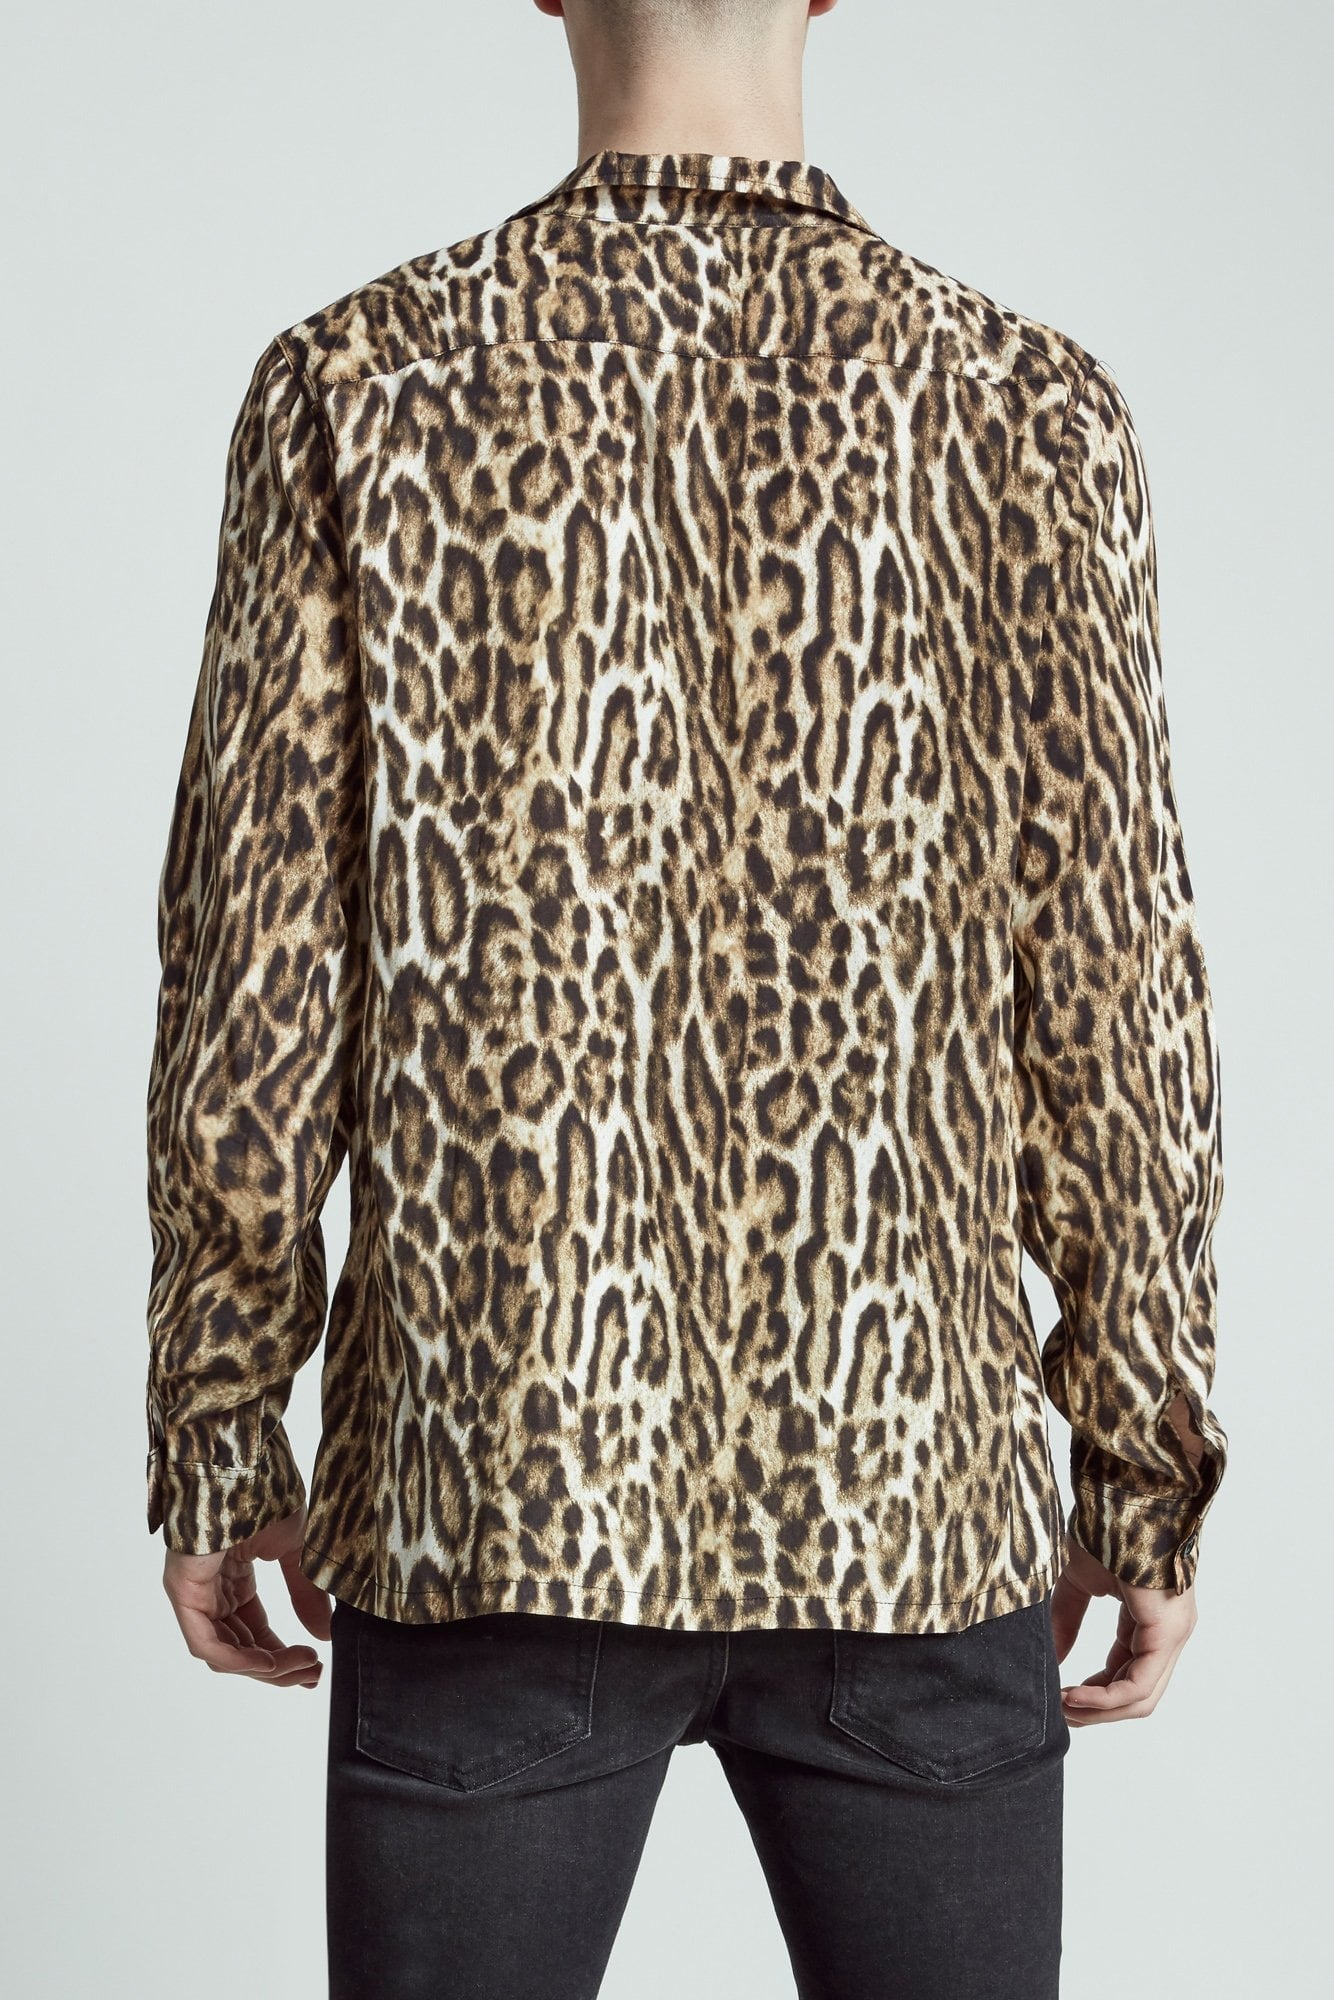 Printed Shirt - Leopard